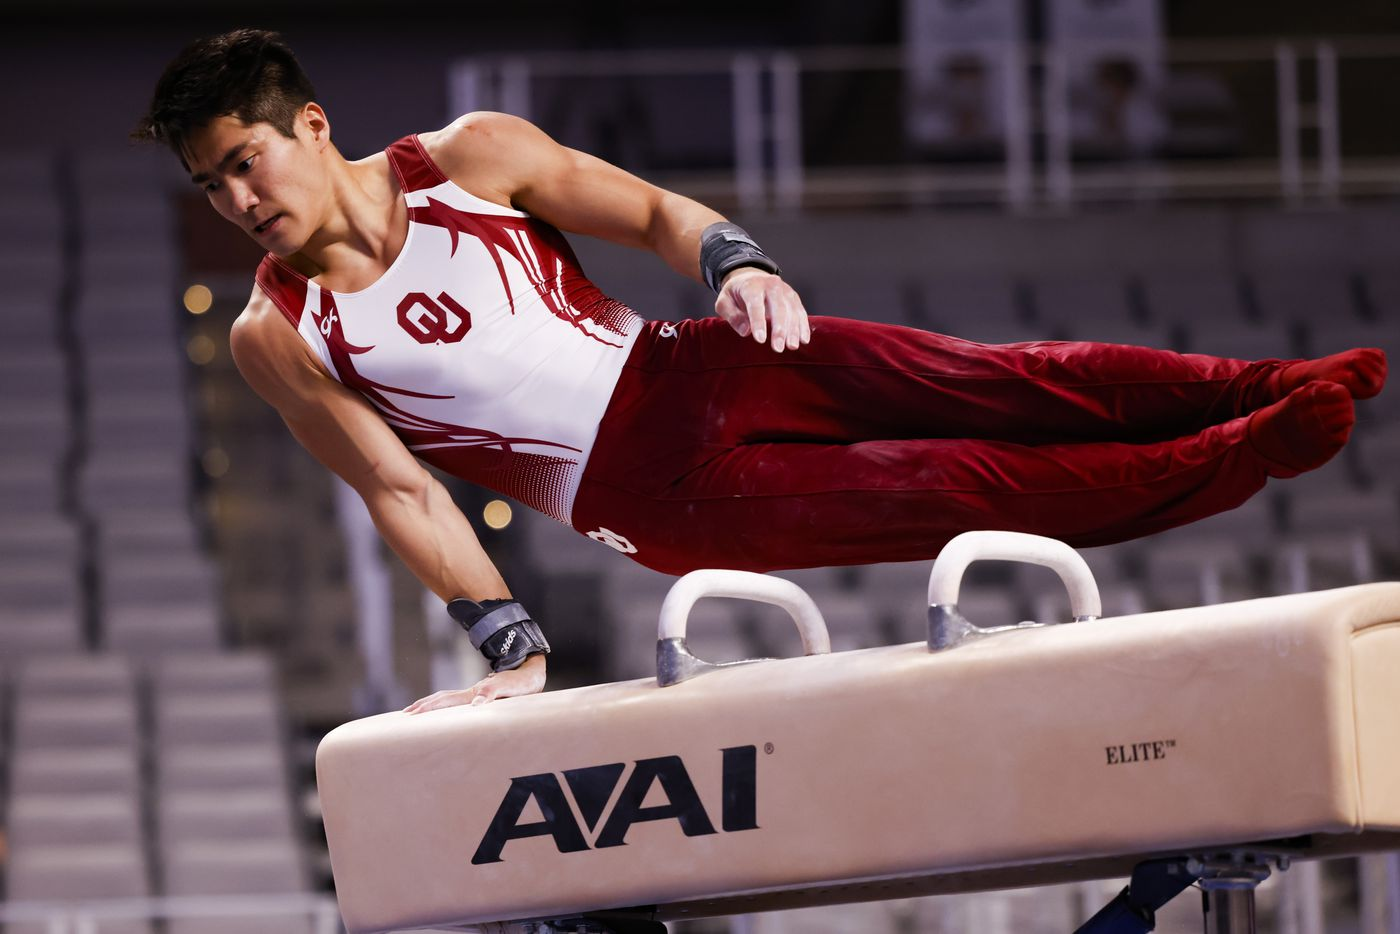 University of Oklahoma's Genki Suzuki performs on the pommel horse during Day 1 of the US gymnastics championships on Thursday, June 3, 2021, at Dickies Arena in Fort Worth. (Juan Figueroa/The Dallas Morning News)